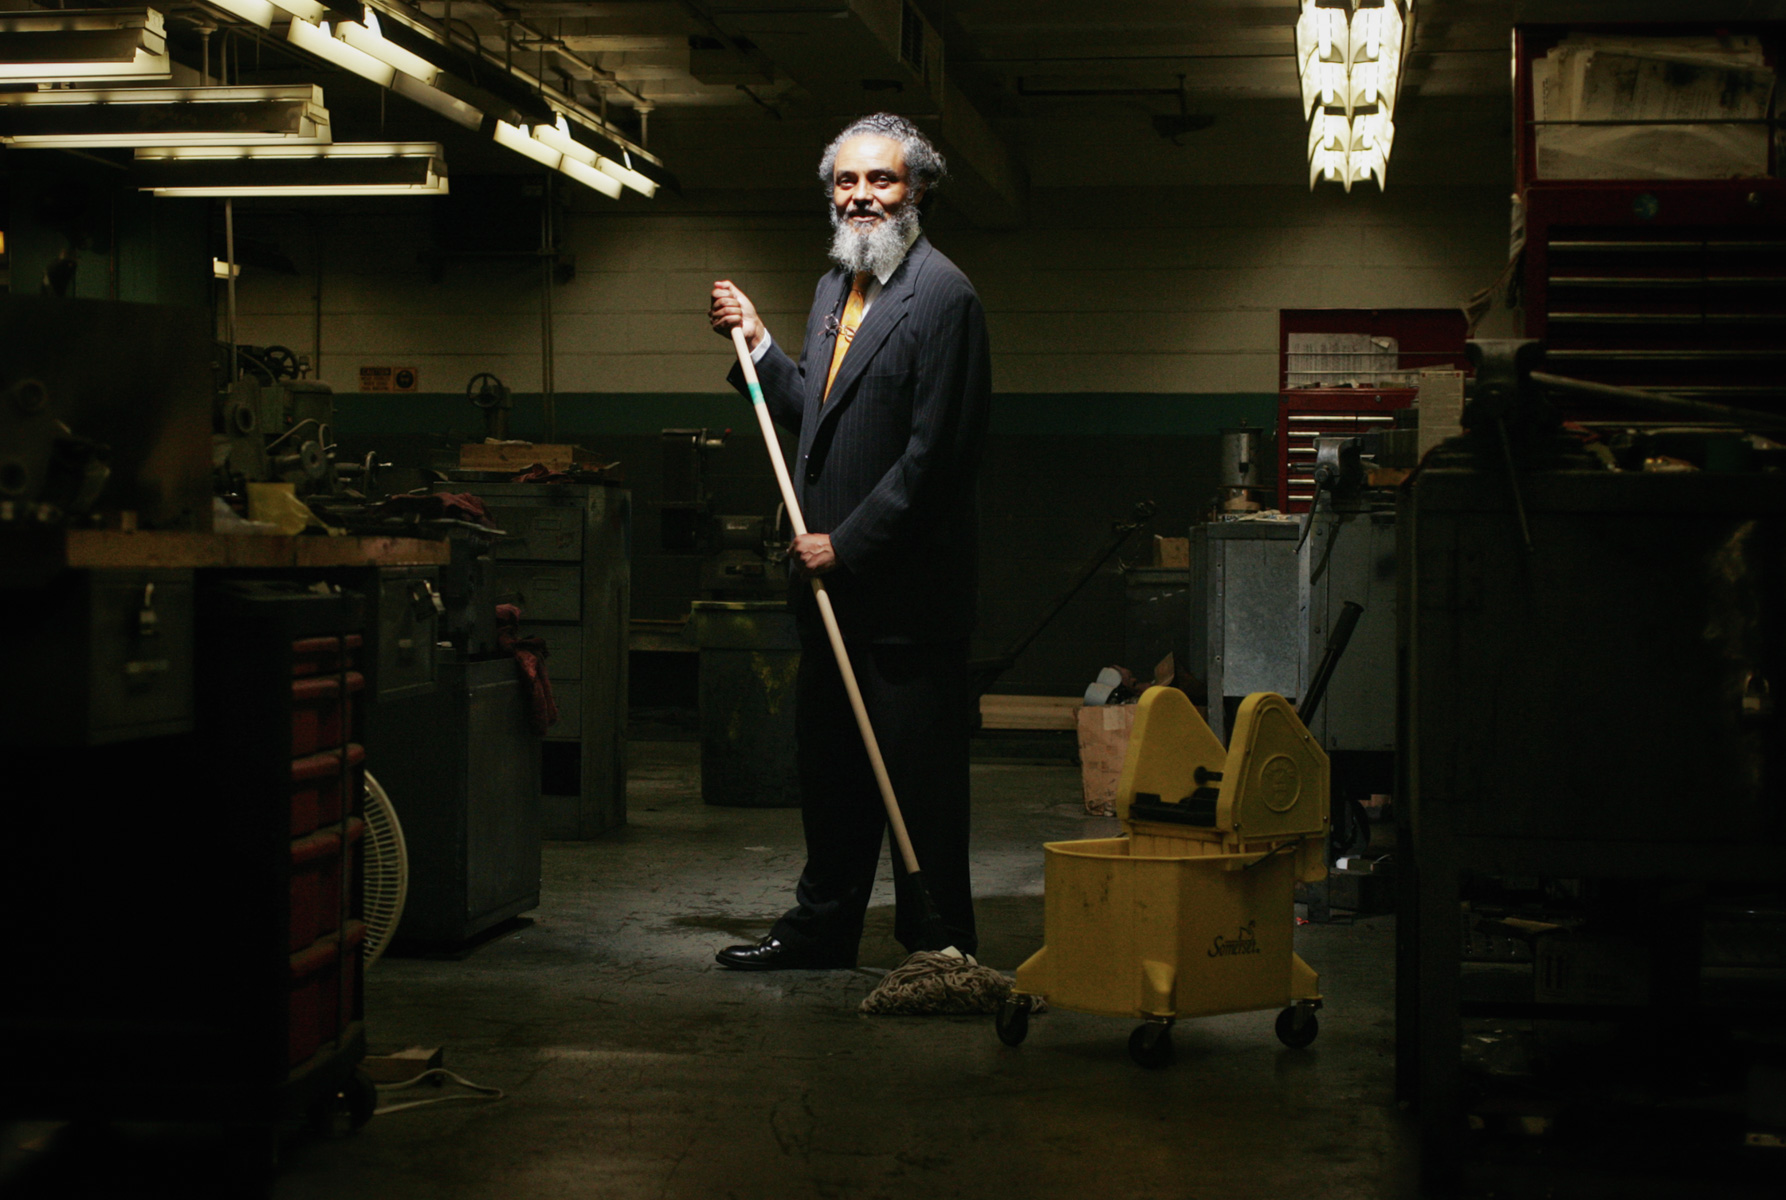 7/7/05 -- Boston -- State Representative Byron Rushing was a night janitor at Smith-Corona typewriter plant in Syracuse, NY mopping, dusting and sweeping.  {quote}I did a lot of reading,{quote} Rushing said.  Photo by Erik Jacobs/Globe Photo